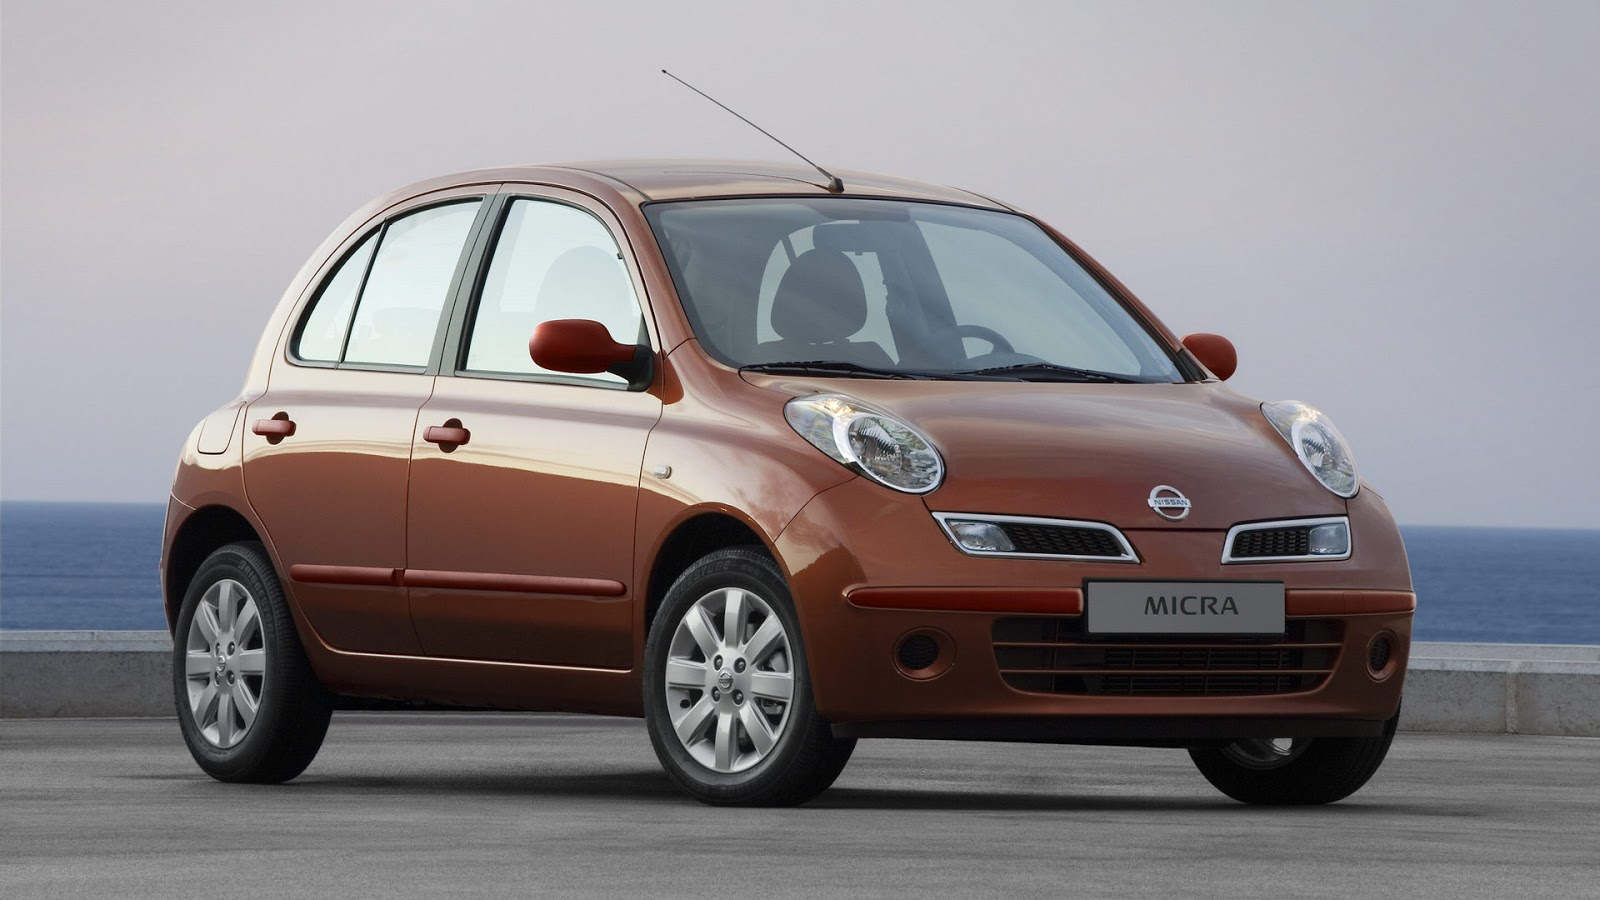 Nissan Micra Cars Wallpapers Of Beautiful Cars Nissan Micra Aka Nissan